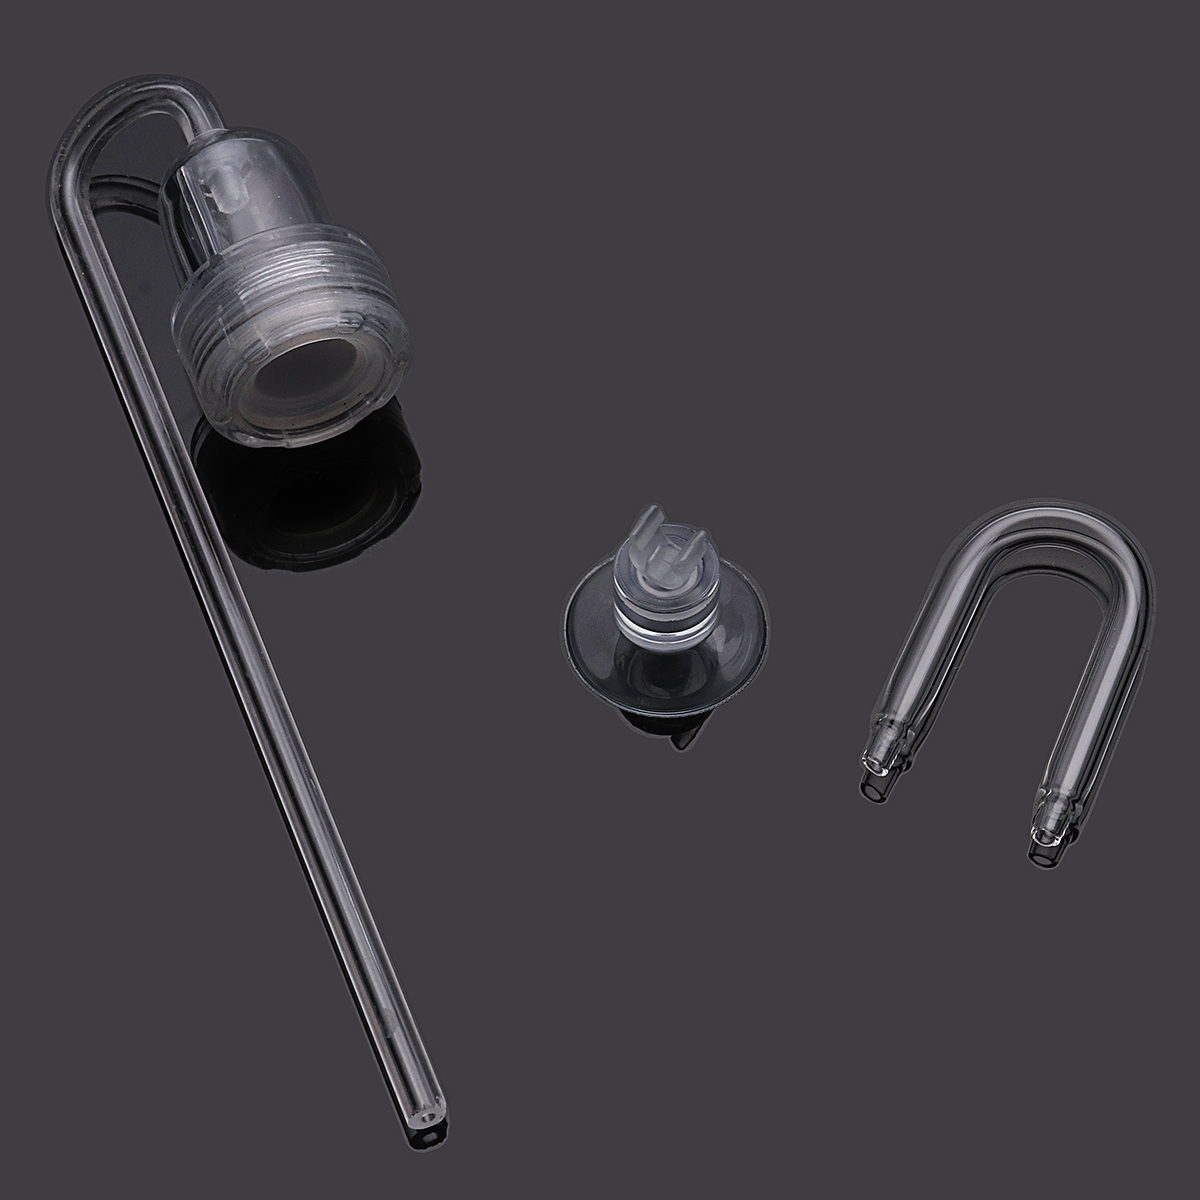 CO2 Refining Unit DIY Triad Thinning Elbow Remember Bubble Refini Atomizer